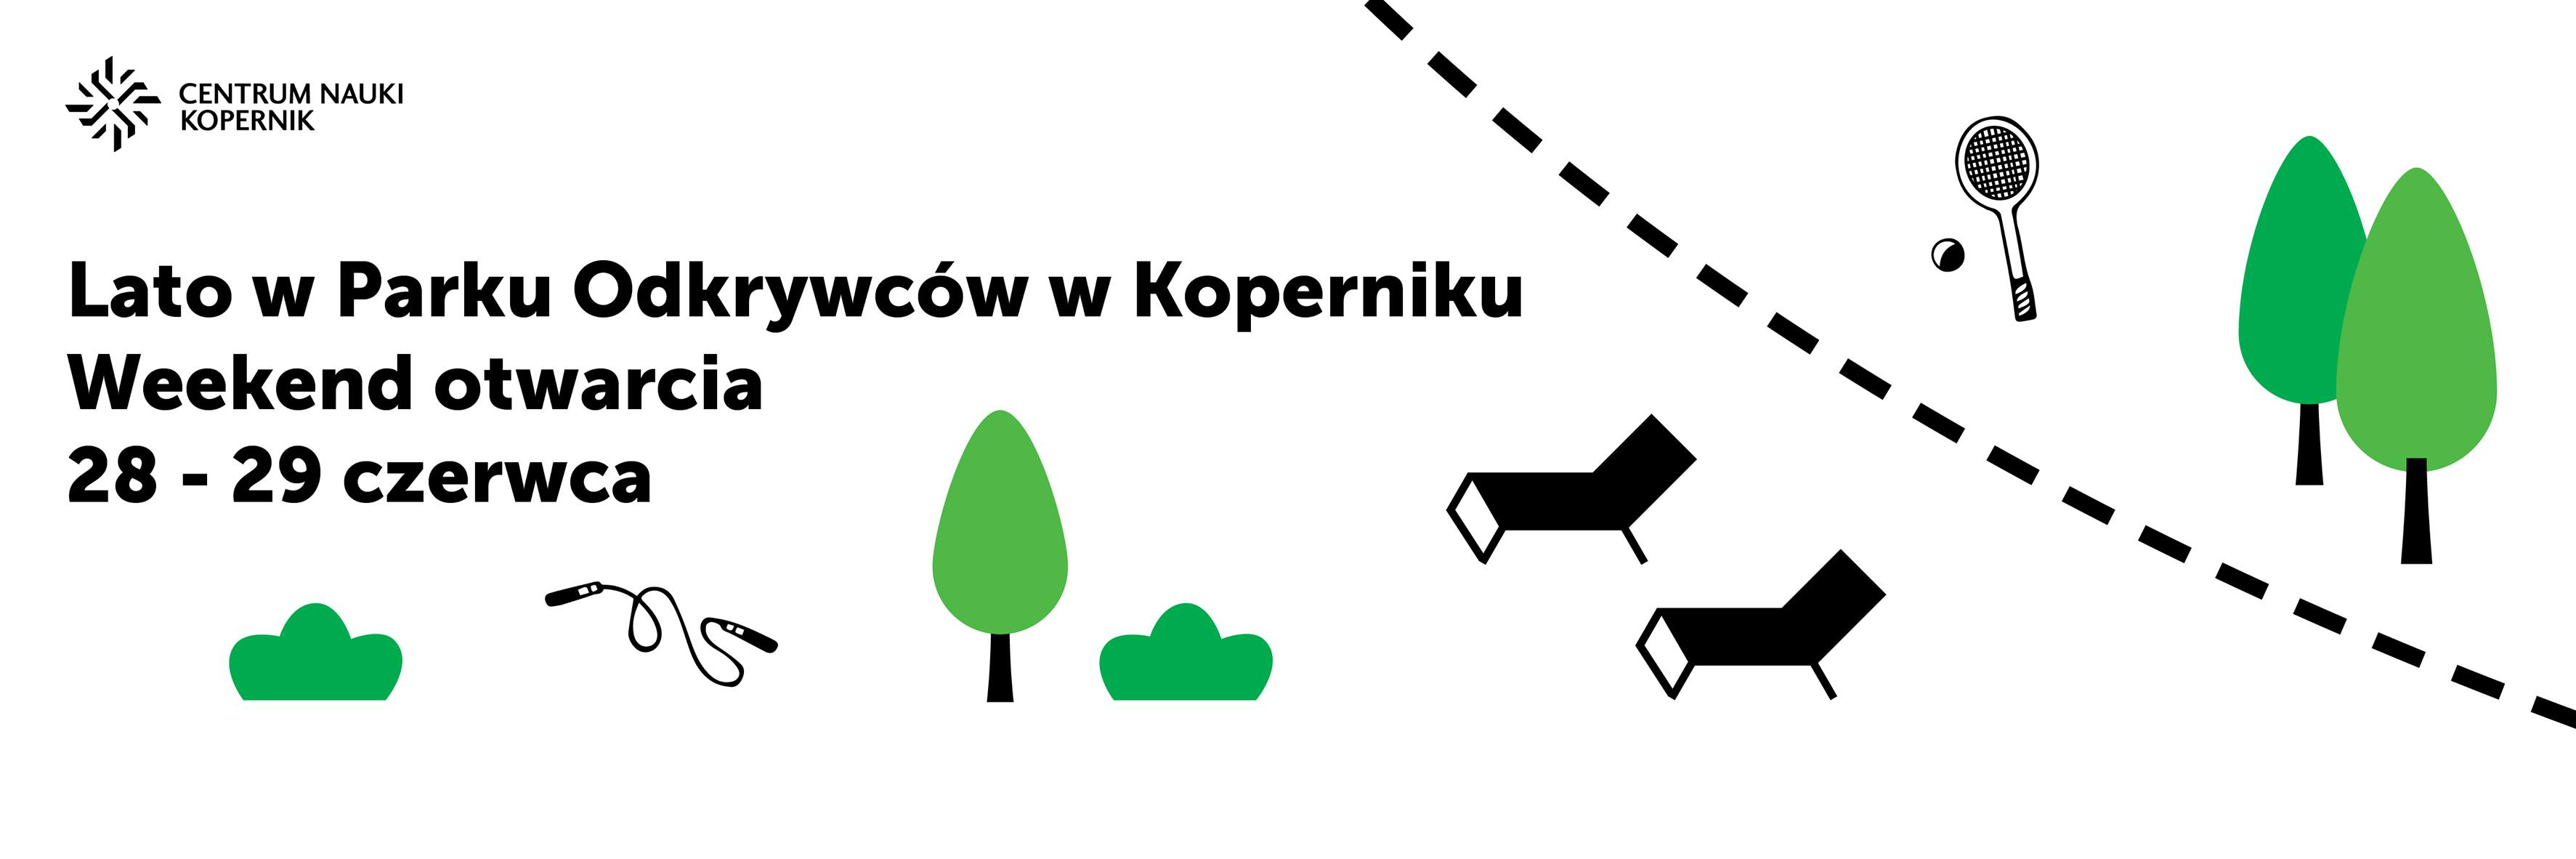 parkodkrywcow